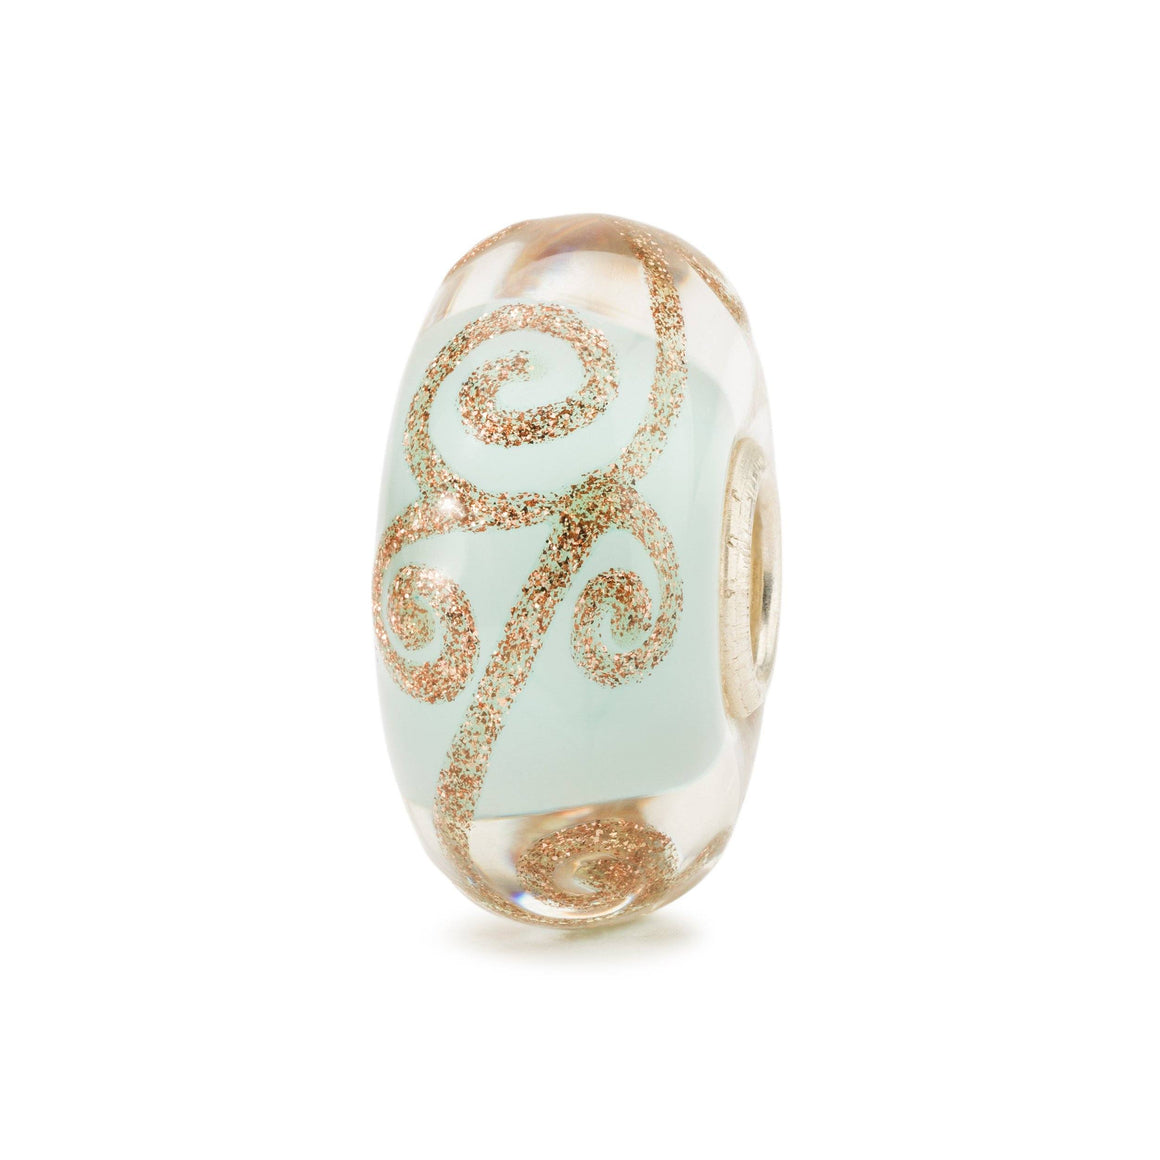 Modern day chaglass charm bead in pale blue with swirls of glittering gold for a Trollbeads bracelet